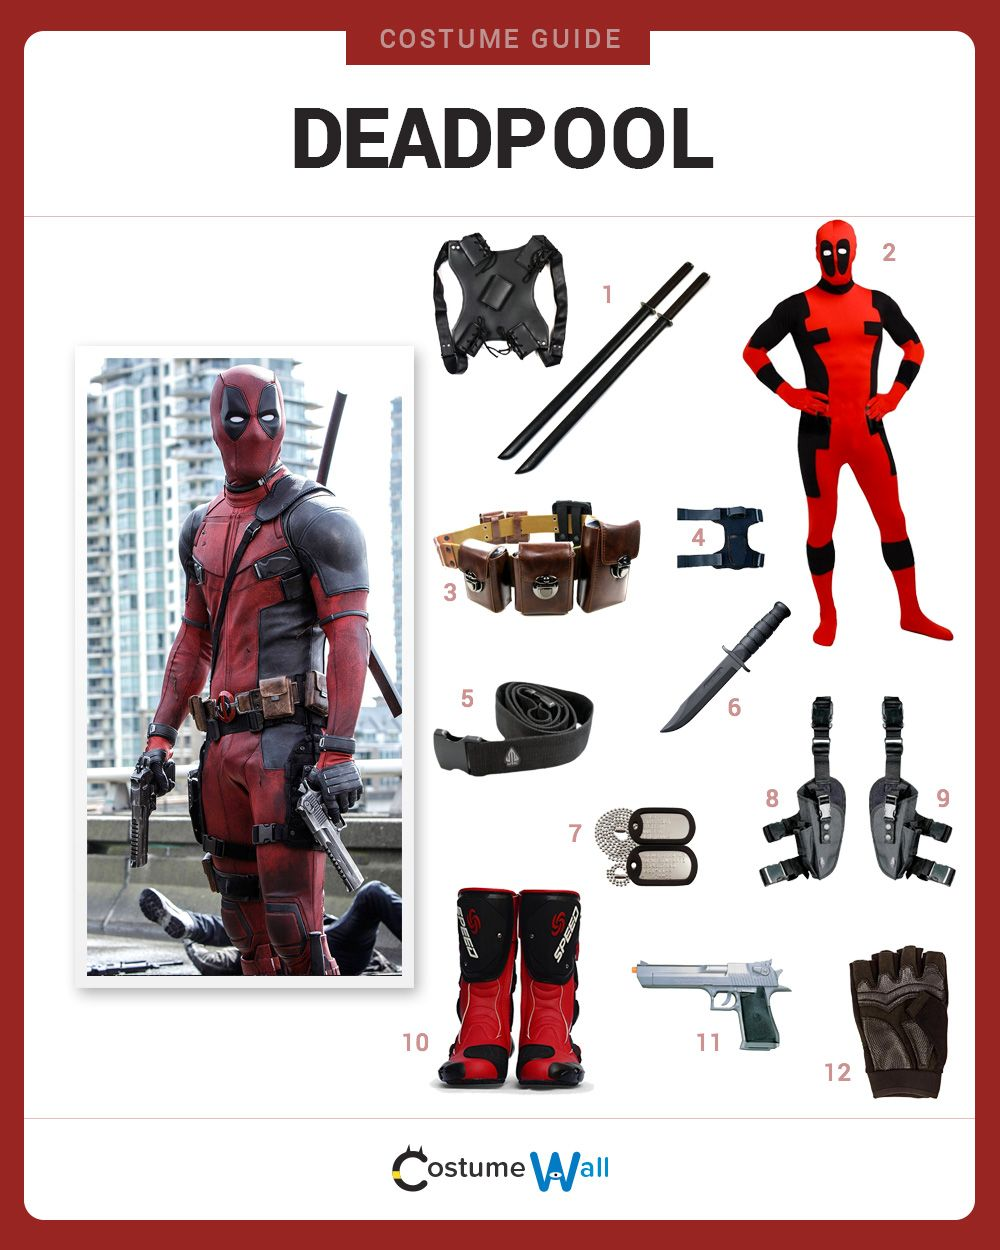 Dress like deadpool pinterest upcoming marvel movies wade dress like deadpool from the upcoming marvel movie get cosplay inspiration and and costume ideas from wade wilson aka the merc with the mouth solutioingenieria